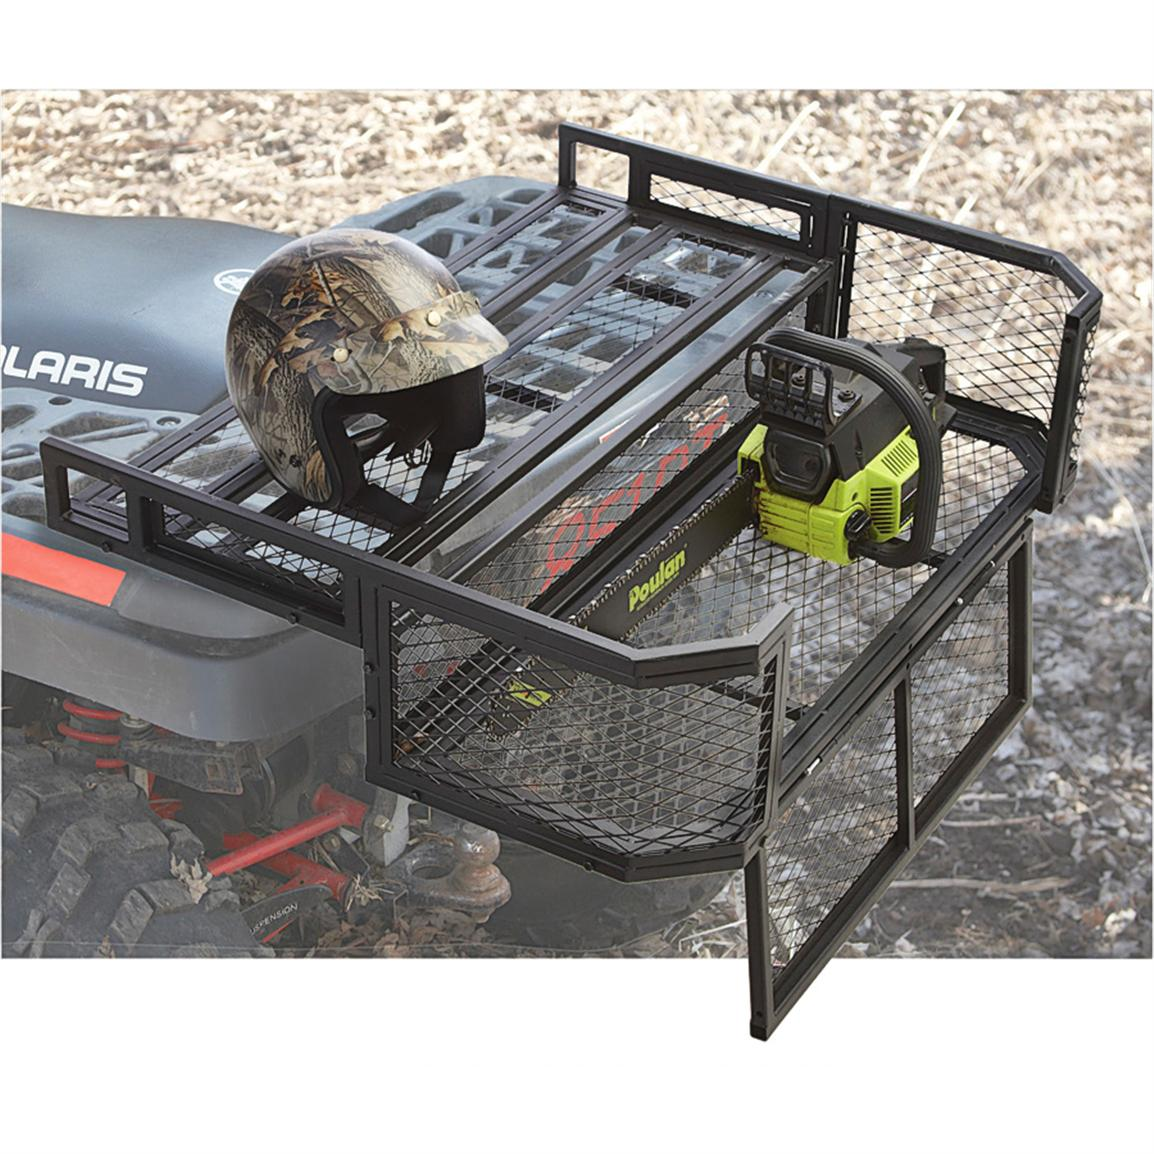 Guide Gear ATV Rear Drop Basket; Gate drops down for easy loading and unloading